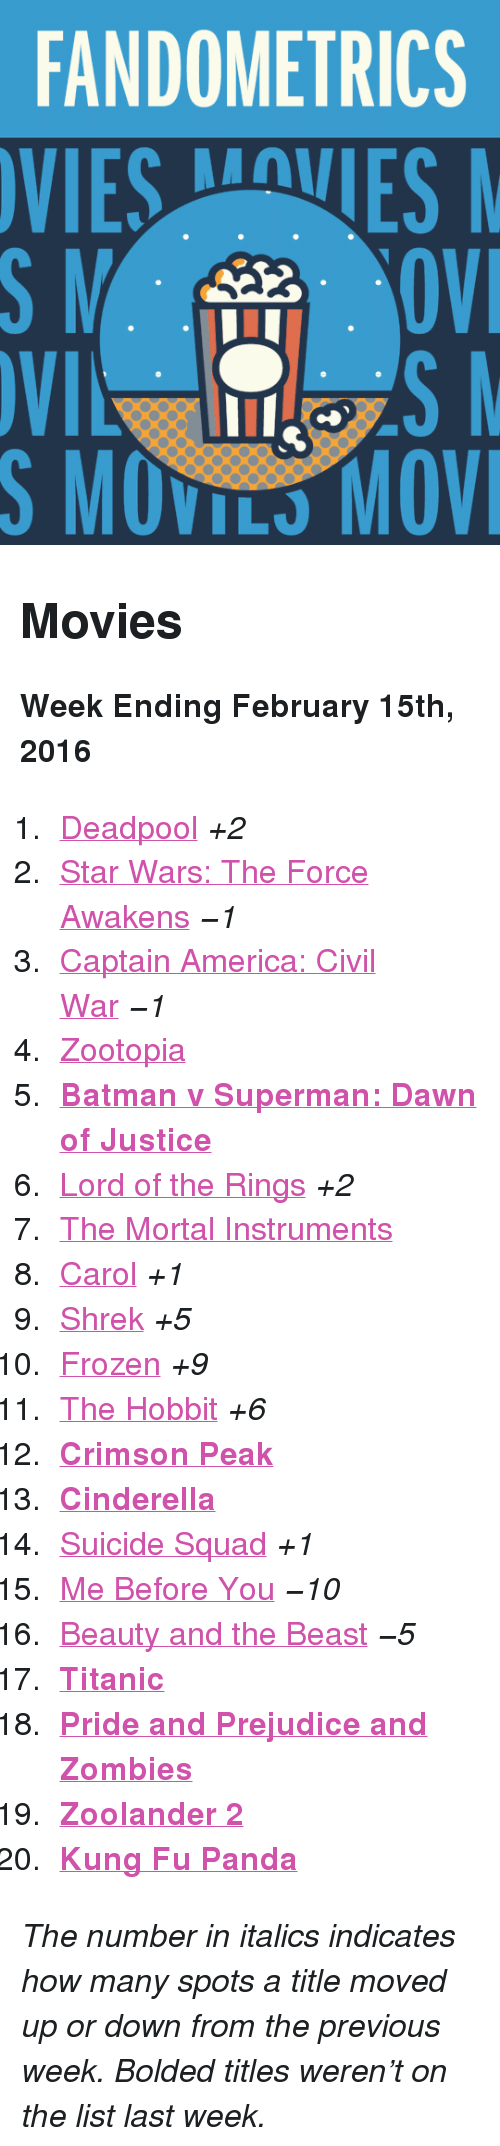 "February 15Th: FANDOMETRICS  VIESVES  S MOVILS MOV <h2>Movies</h2><p><b>Week Ending February 15th, 2016</b></p><ol><li><a href=""http://www.tumblr.com/search/deadpool"">Deadpool</a> <i>+2</i></li>  <li><a href=""http://www.tumblr.com/search/star%20wars:%20the%20force%20awakens"">Star Wars: The Force Awakens</a> <i>−1</i></li>  <li><a href=""http://www.tumblr.com/search/captain%20america%20civil%20war"">Captain America: Civil War</a> <i>−1</i></li>  <li><a href=""http://www.tumblr.com/search/zootopia"">Zootopia</a></li>  <li><a href=""http://www.tumblr.com/search/batman%20v%20superman""><b>Batman v Superman: Dawn of Justice</b></a></li>  <li><a href=""http://www.tumblr.com/search/lotr"">Lord of the Rings</a> <i>+2</i></li>  <li><a href=""http://www.tumblr.com/search/the%20mortal%20instruments"">The Mortal Instruments</a></li>  <li><a href=""http://www.tumblr.com/search/carol"">Carol</a> <i>+1</i></li>  <li><a href=""http://www.tumblr.com/search/shrek"">Shrek</a> <i>+5</i></li>  <li><a href=""http://www.tumblr.com/search/frozen"">Frozen</a> <i>+9</i></li>  <li><a href=""http://www.tumblr.com/search/the%20hobbit"">The Hobbit</a> <i>+6</i></li>  <li><a href=""http://www.tumblr.com/search/crimson%20peak""><b>Crimson Peak</b></a> </li>  <li><a href=""http://www.tumblr.com/search/cinderella""><b>Cinderella</b></a></li>  <li><a href=""http://www.tumblr.com/search/suicide%20squad"">Suicide Squad</a> <i>+1</i></li>  <li><a href=""http://www.tumblr.com/search/me%20before%20you"">Me Before You</a> <i>−10</i></li>  <li><a href=""http://www.tumblr.com/search/beauty%20and%20the%20beast"">Beauty and the Beast</a> <i>−5</i></li>  <li><a href=""http://www.tumblr.com/search/titanic""><b>Titanic</b></a></li>  <li><a href=""http://www.tumblr.com/search/pride%20and%20prejudice%20and%20zombies""><b>Pride and Prejudice and Zombies</b></a></li>  <li><a href=""http://www.tumblr.com/search/zoolander%202""><b>Zoolander 2</b></a></li>  <li><a href=""http://www.tumblr.com/search/kung%20fu%20panda""><b>Kung Fu Panda</b></a></li></ol><p><i>The number in italics indicates how many spots a title moved up or down from the previous week. Bolded titles weren't on the list last week.</i></p>"